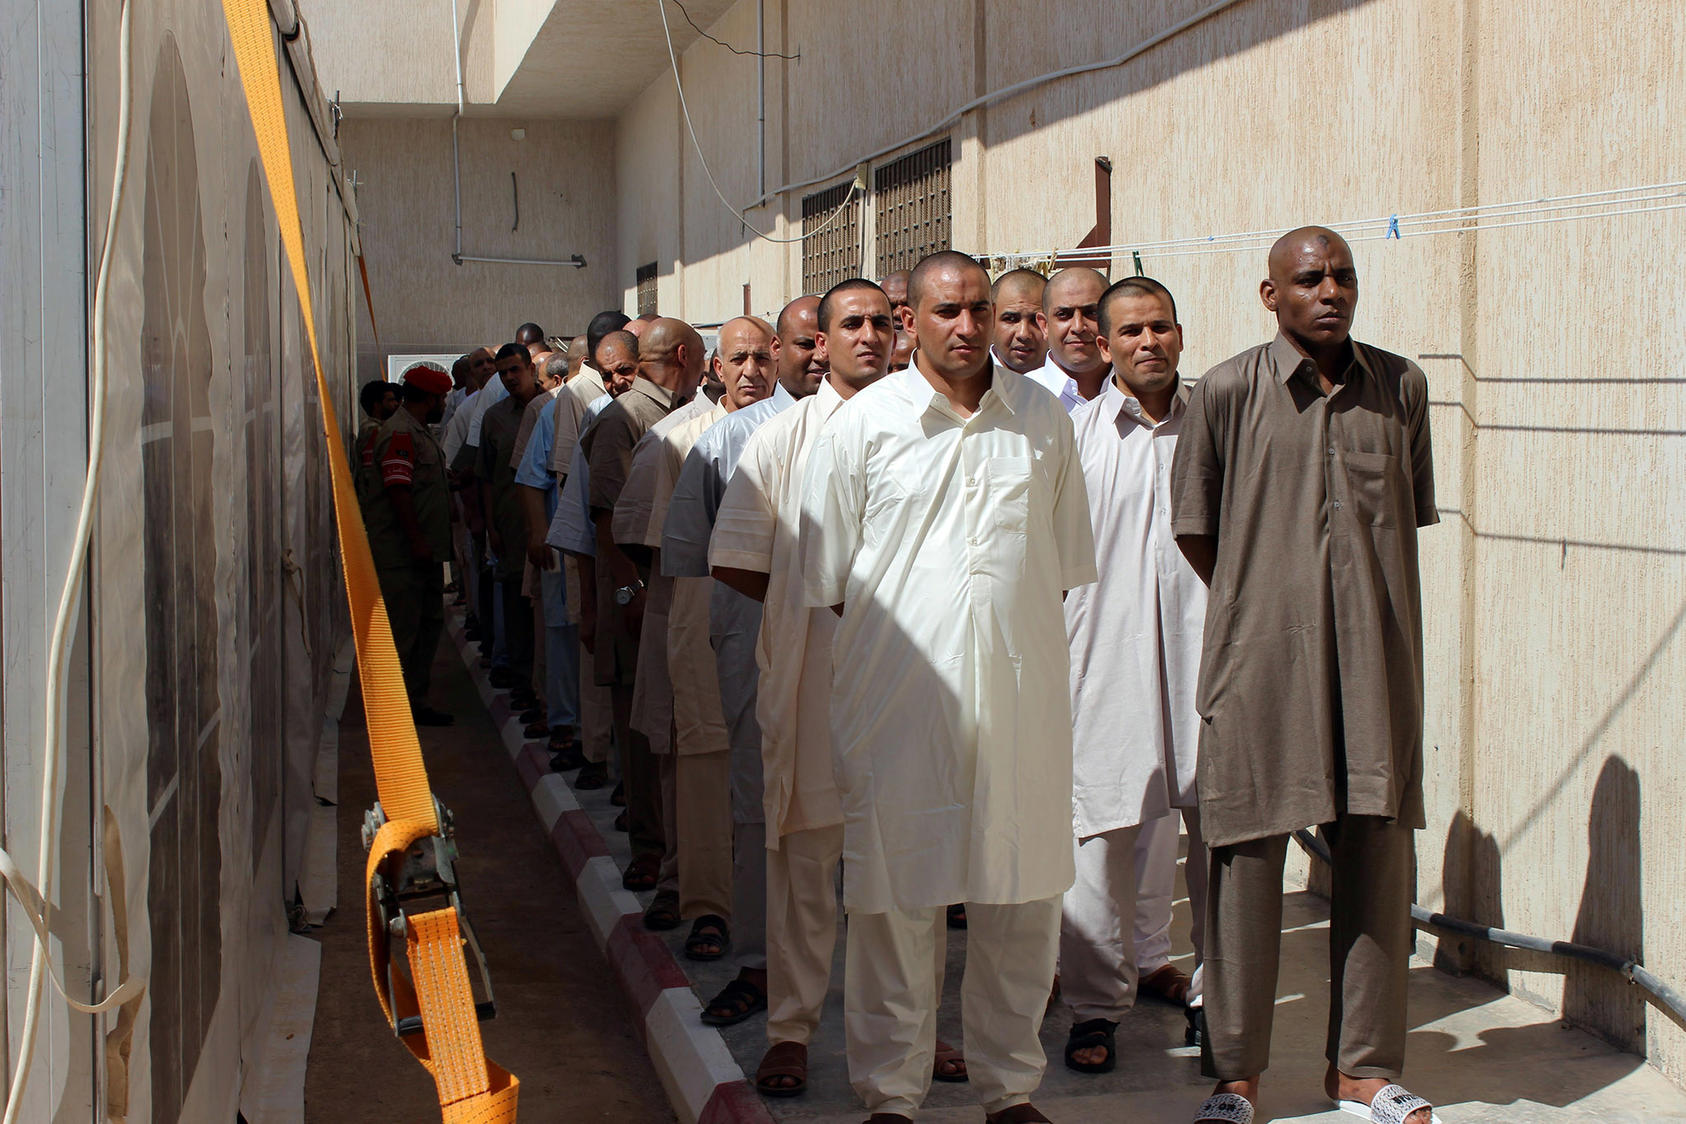 Gadhafi-era prisoners line up in queues ahead of their release in Misrata, Libya, in August 2017. (Ayman al-Sahili/Reuters)